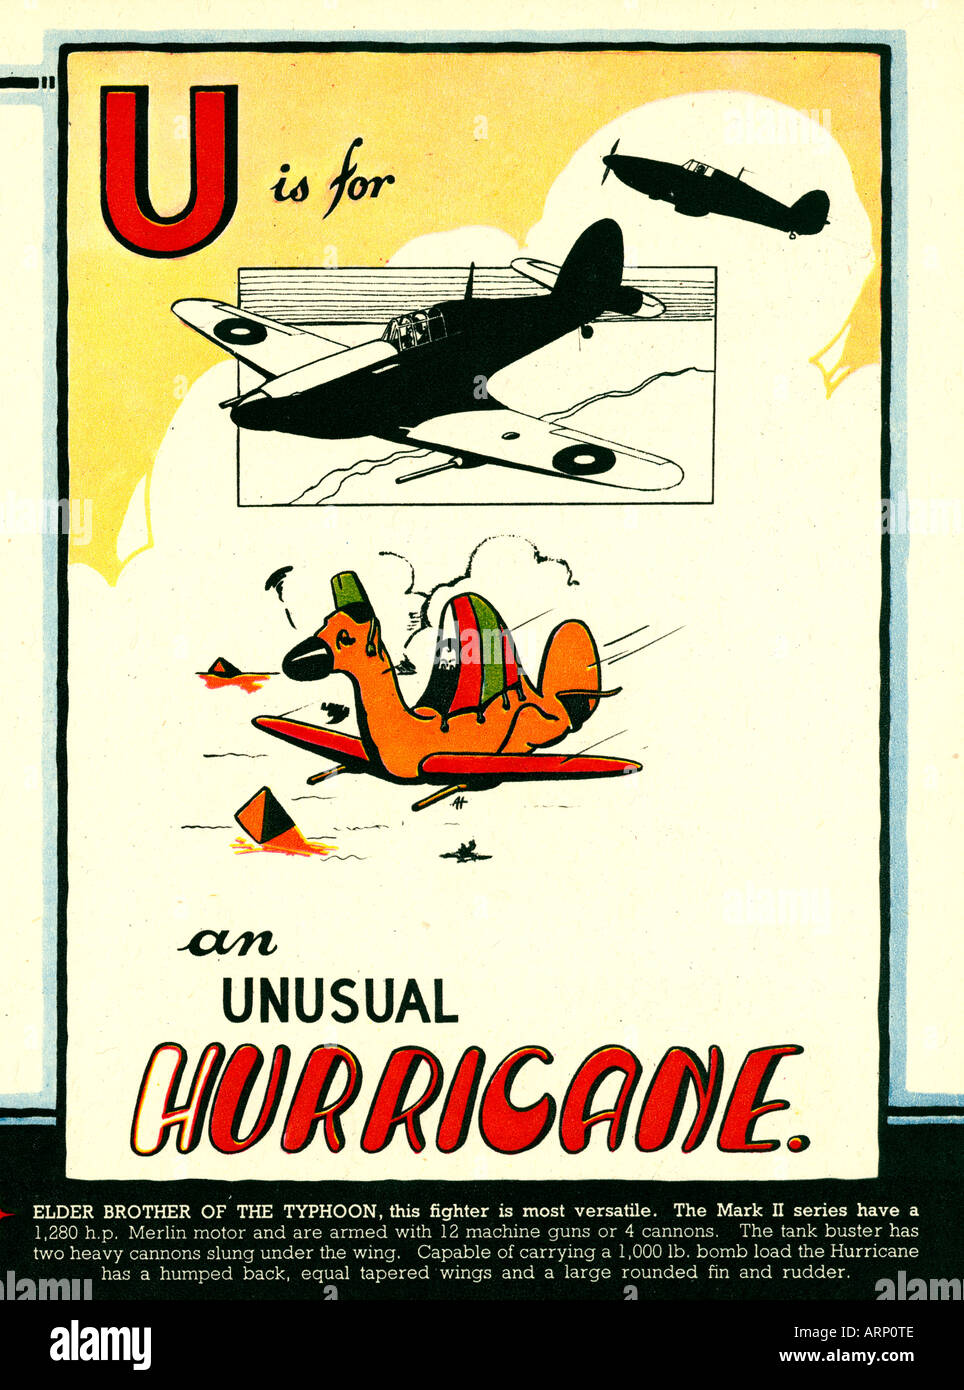 U is for H Urricane 1943 English wartime childrens alphabet book of fighting airplanes the iconic British fighter - Stock Image